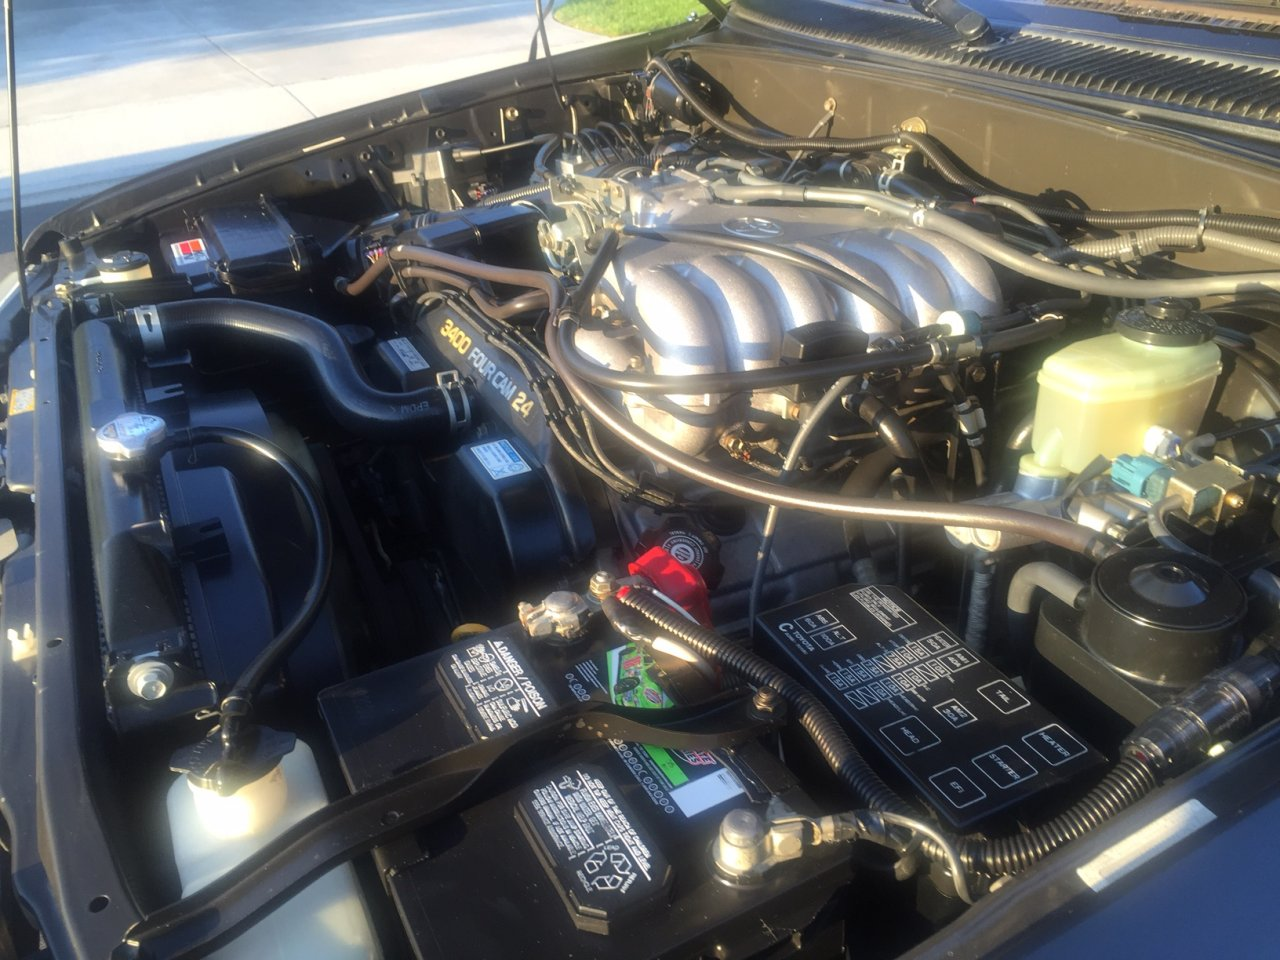 Dyna For Sale Southern California >> For Sale - 1996 4 runner SR5 for sale | IH8MUD Forum